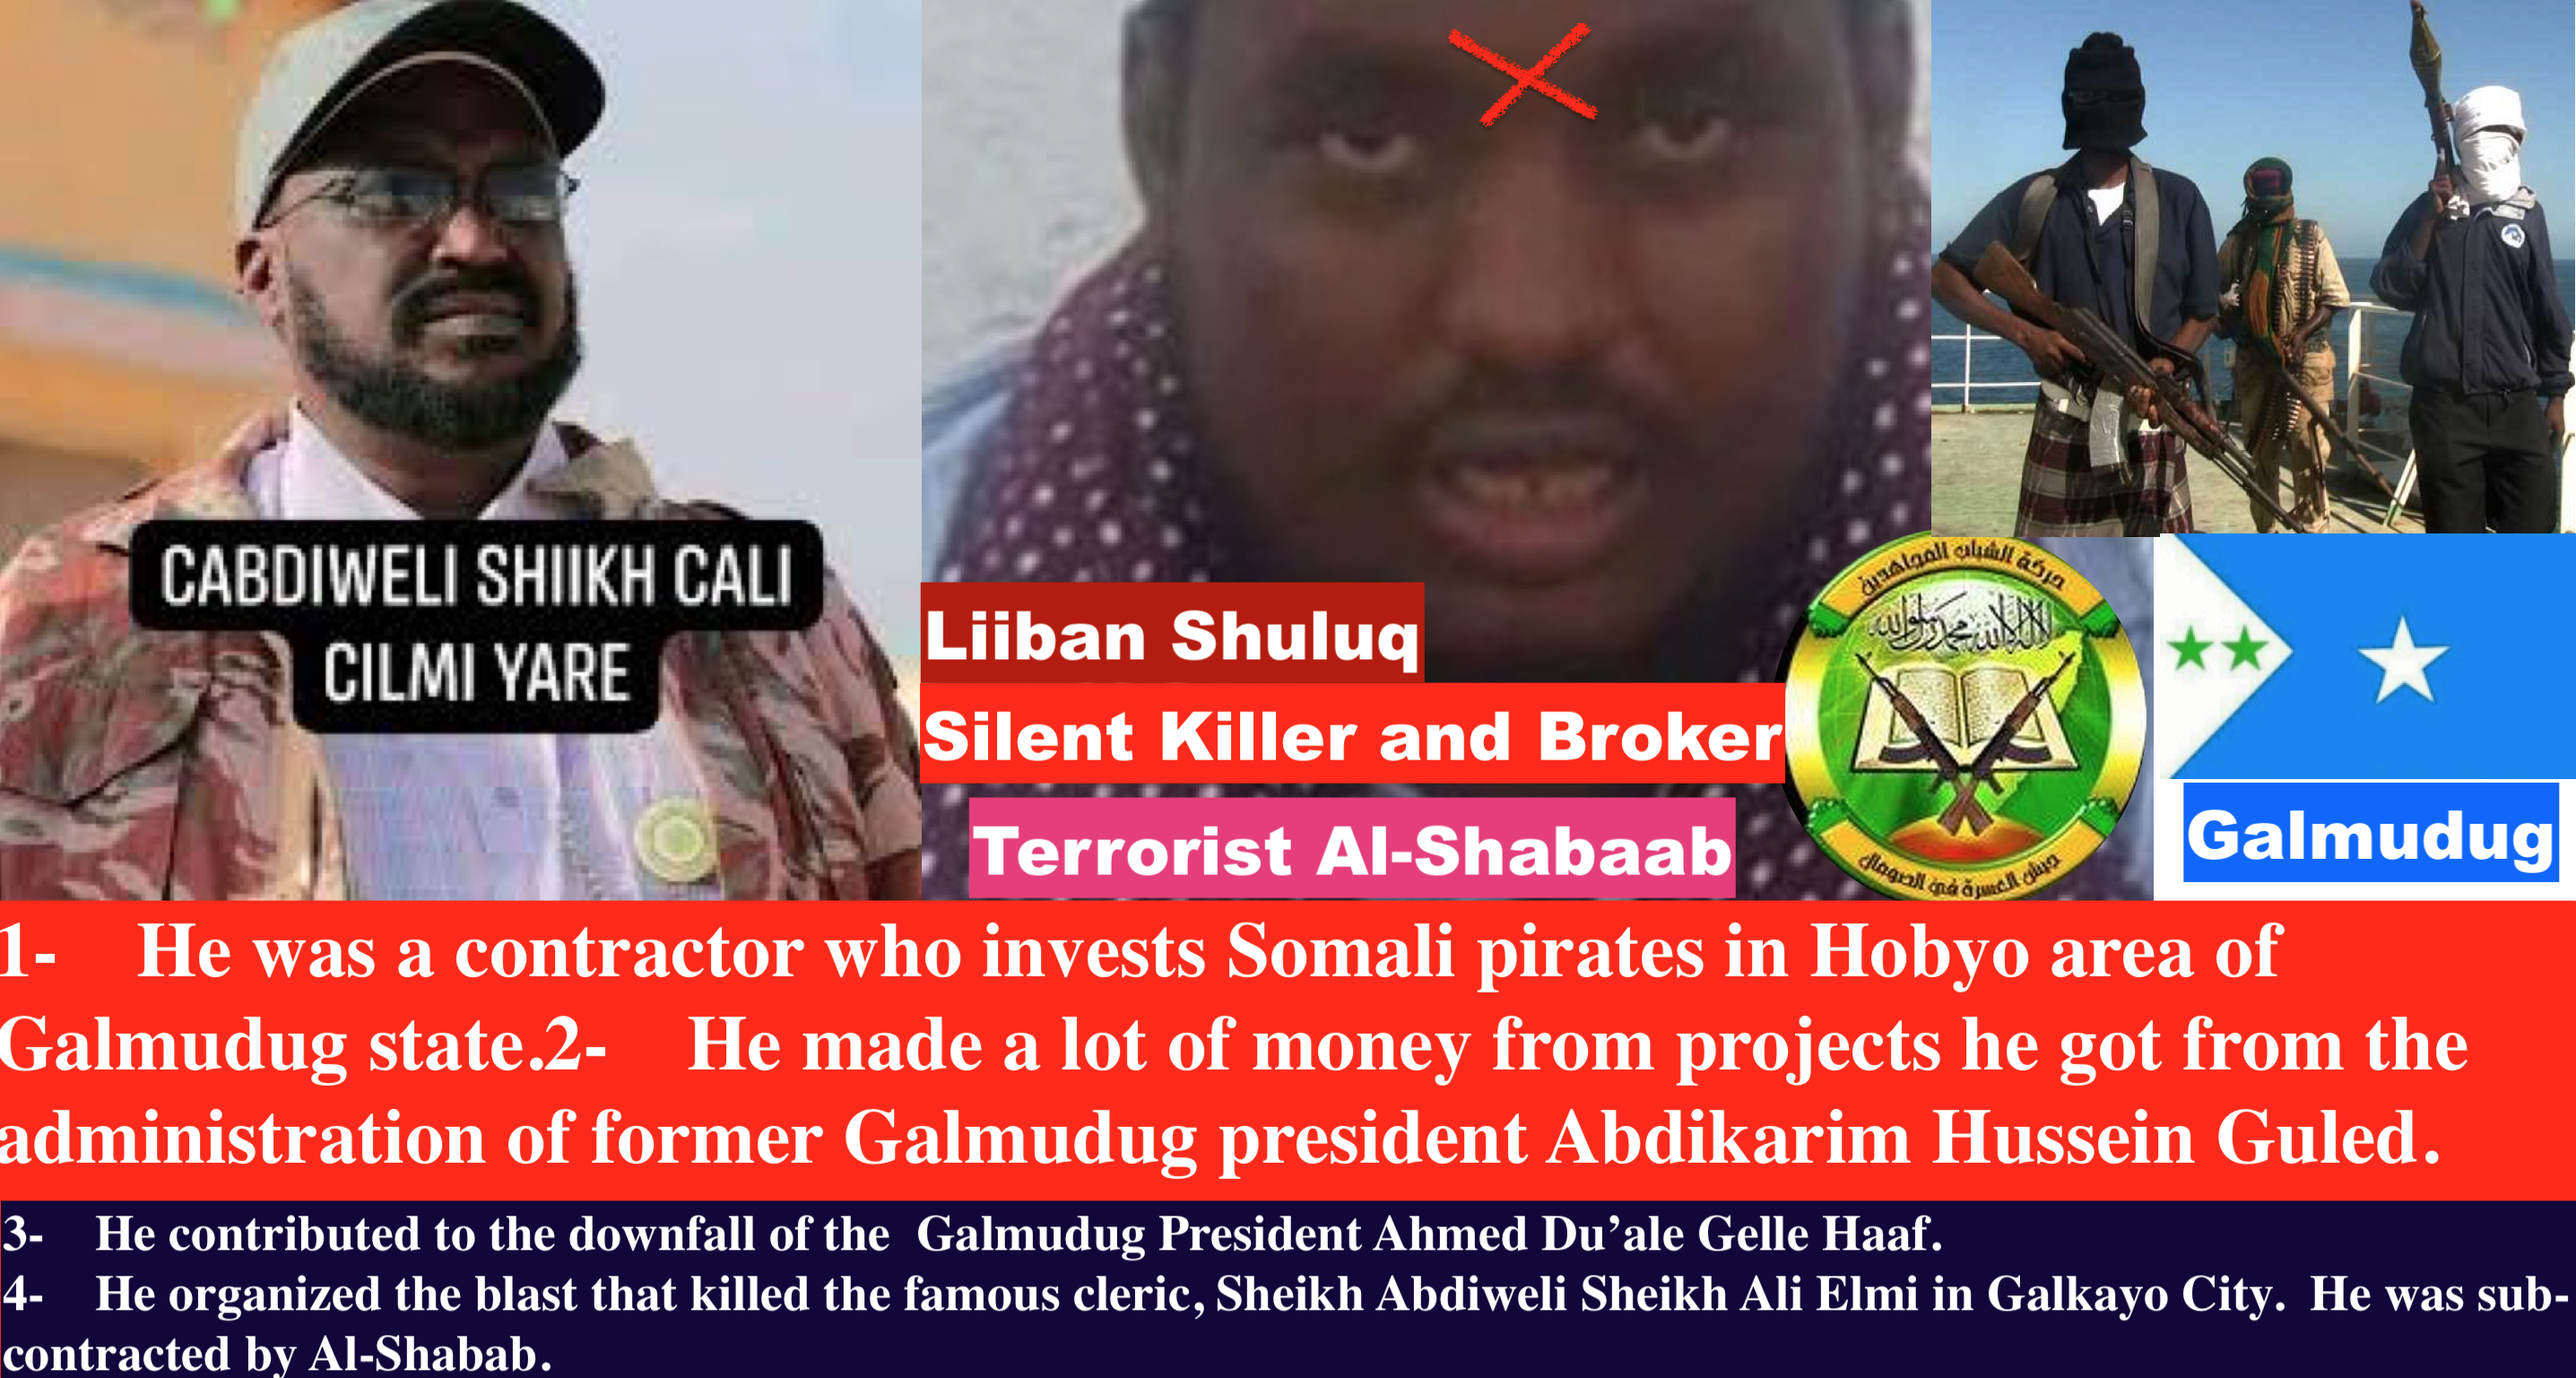 Somalia: Who is the Silent killer of Galmudug State?  Liiban Shuluq.